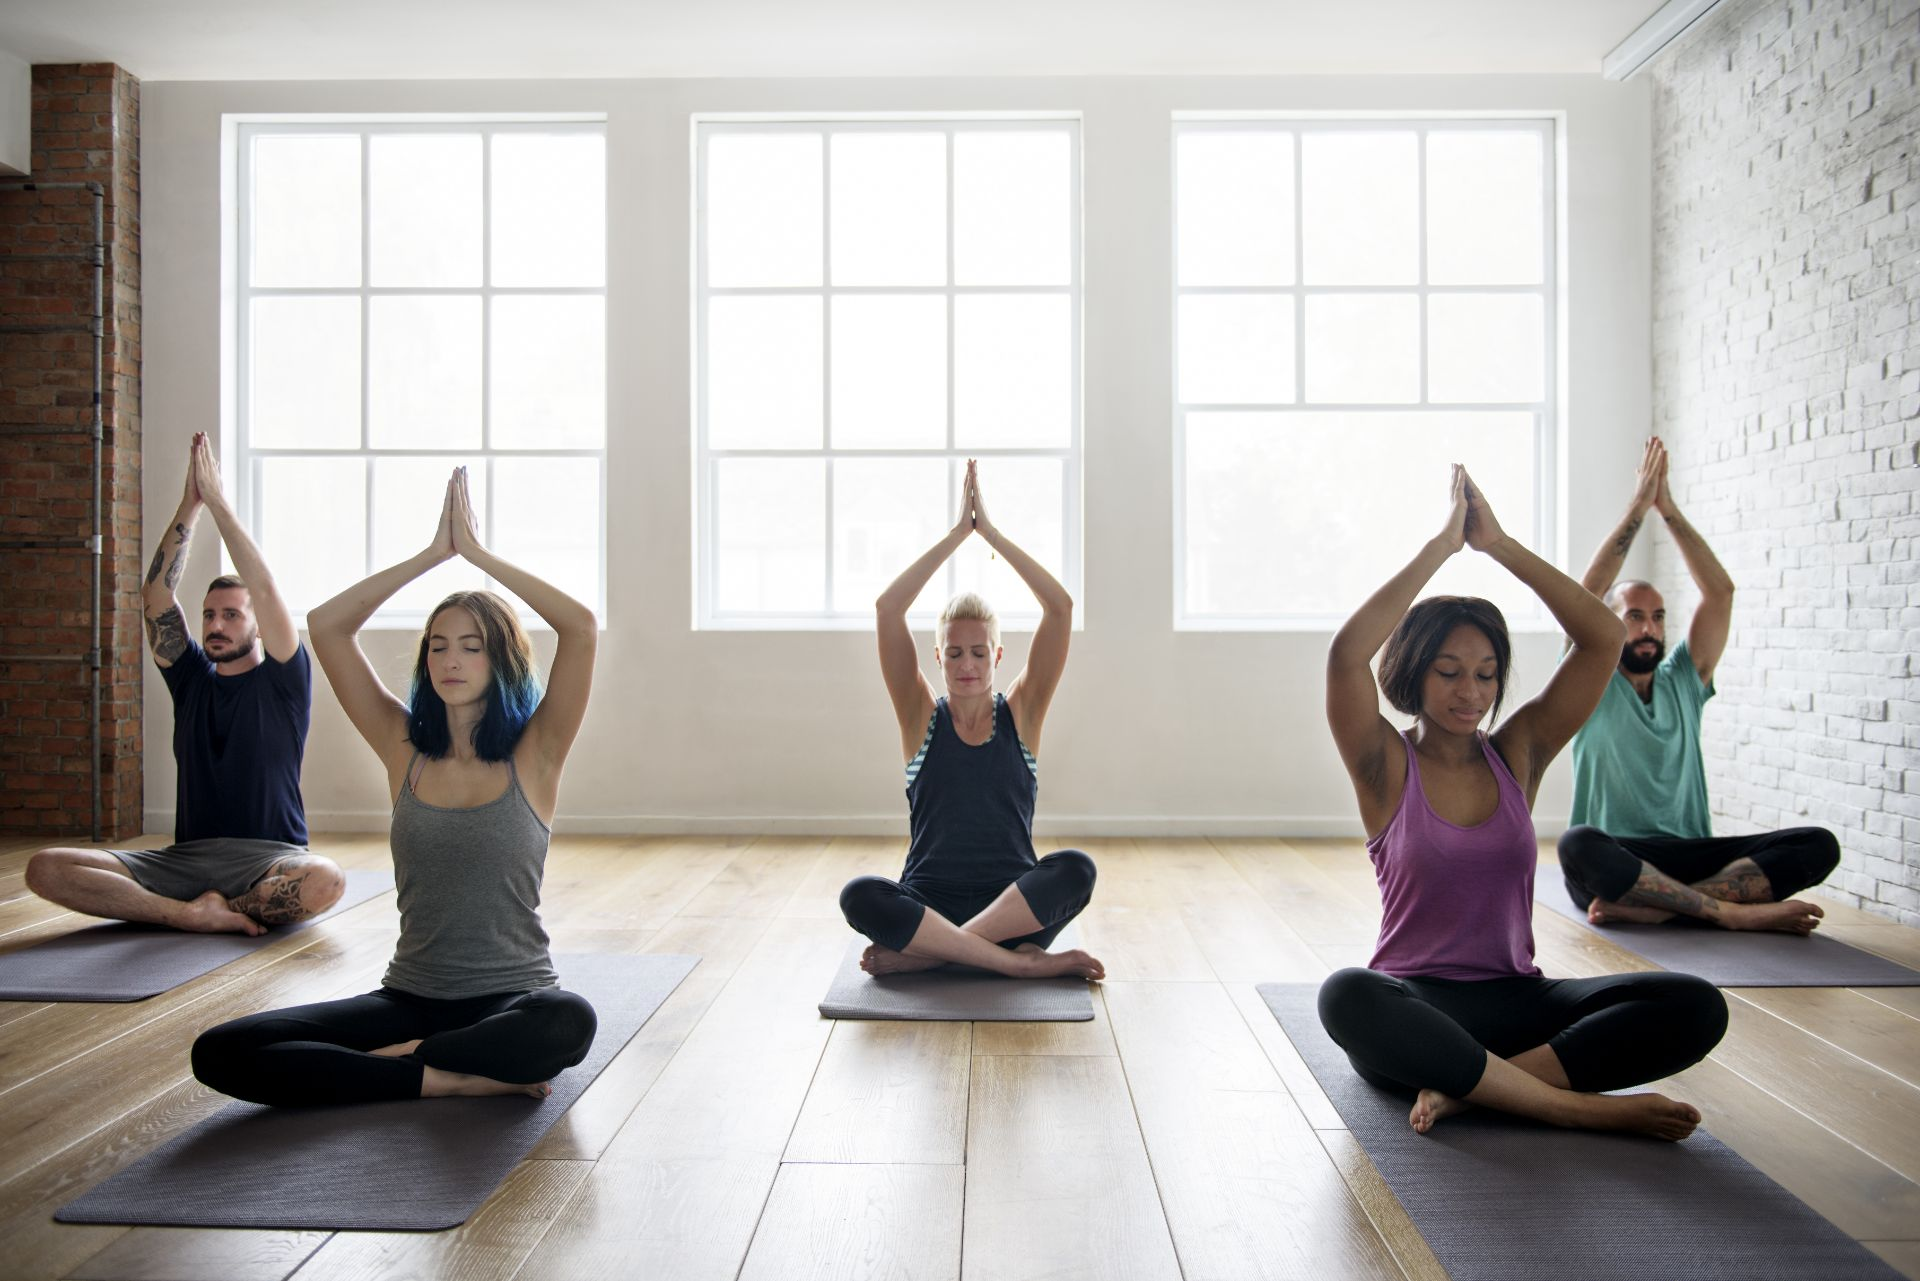 Why You Should Find Time to Do Yoga